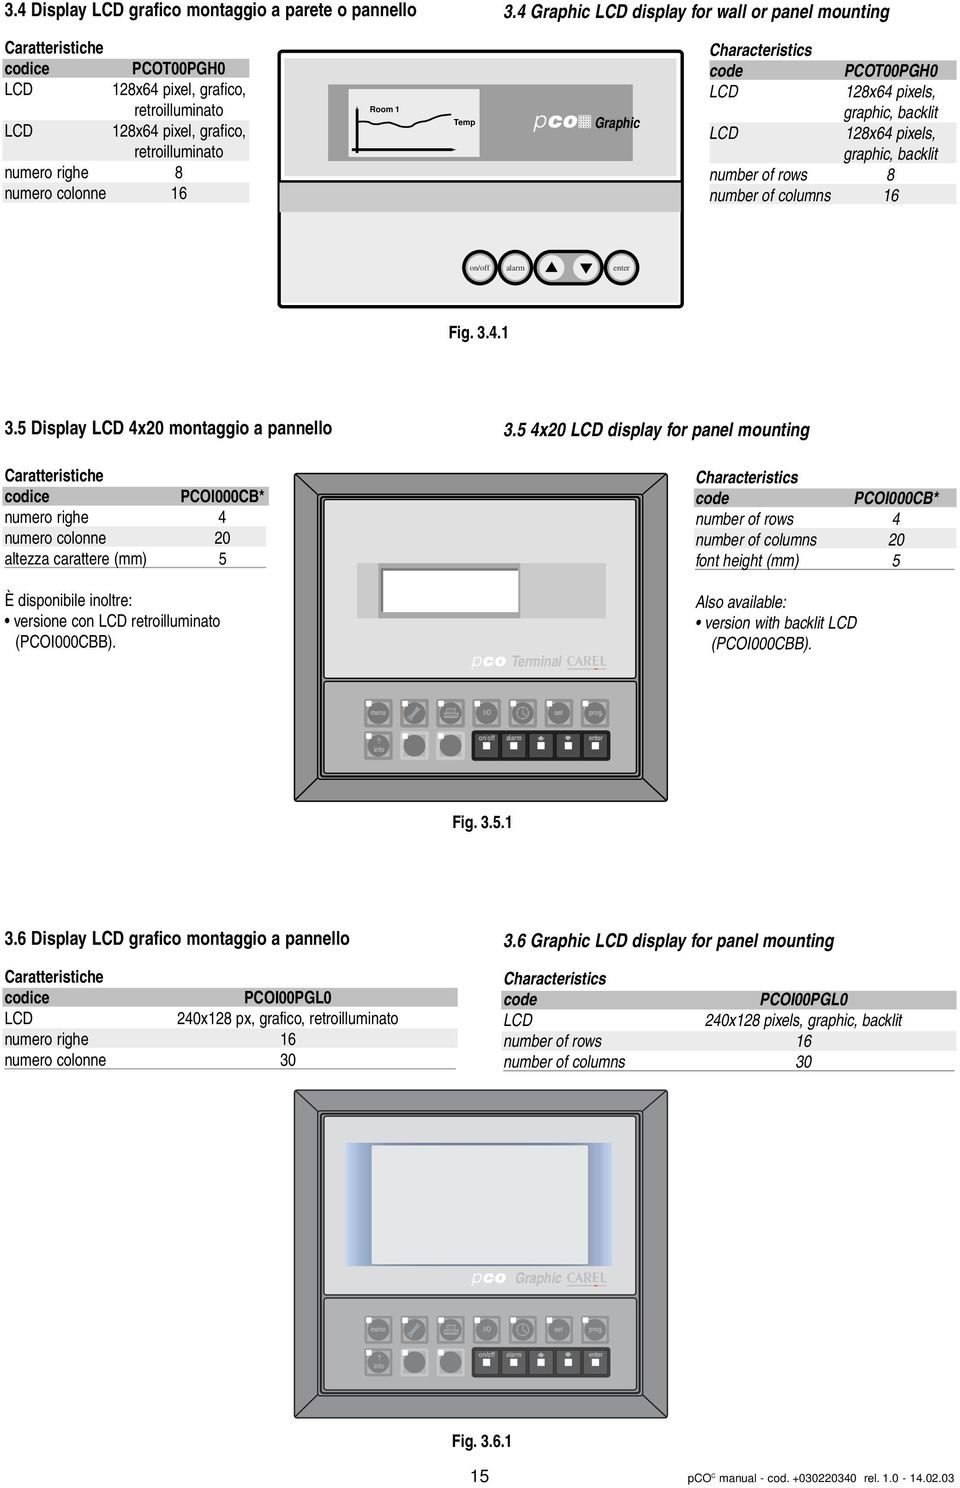 16 Room 1 Temp Graphic Characteristics code LCD LCD PCOT00PGH0 128x64 pixels, graphic, backlit 128x64 pixels, graphic, backlit number of rows 8 number of columns 16 on/off alarm enter Fig. 3.4.1 3.